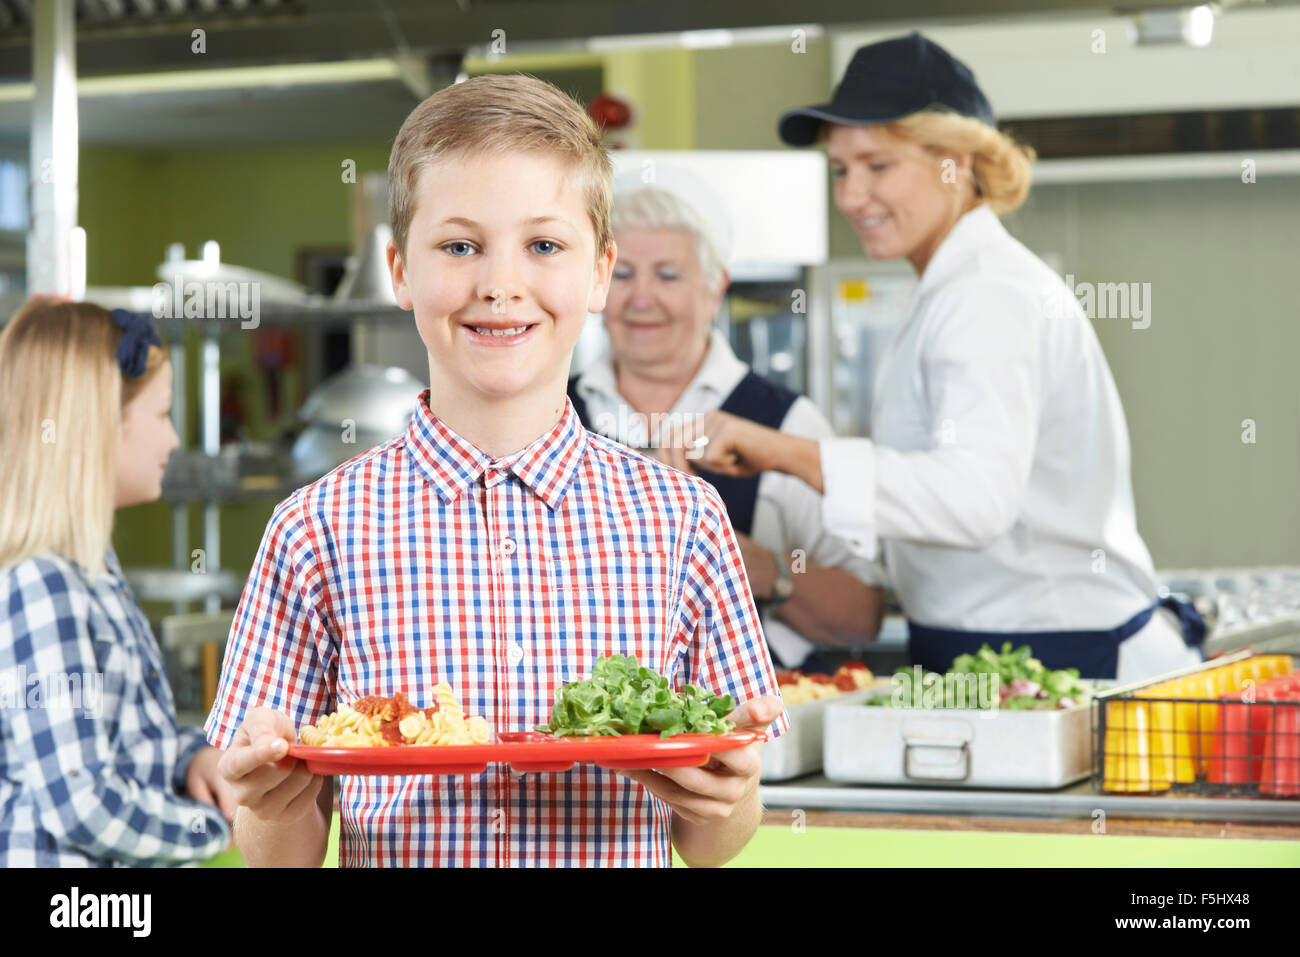 Male Pupil With Healthy Lunch In School Canteen - Stock Image